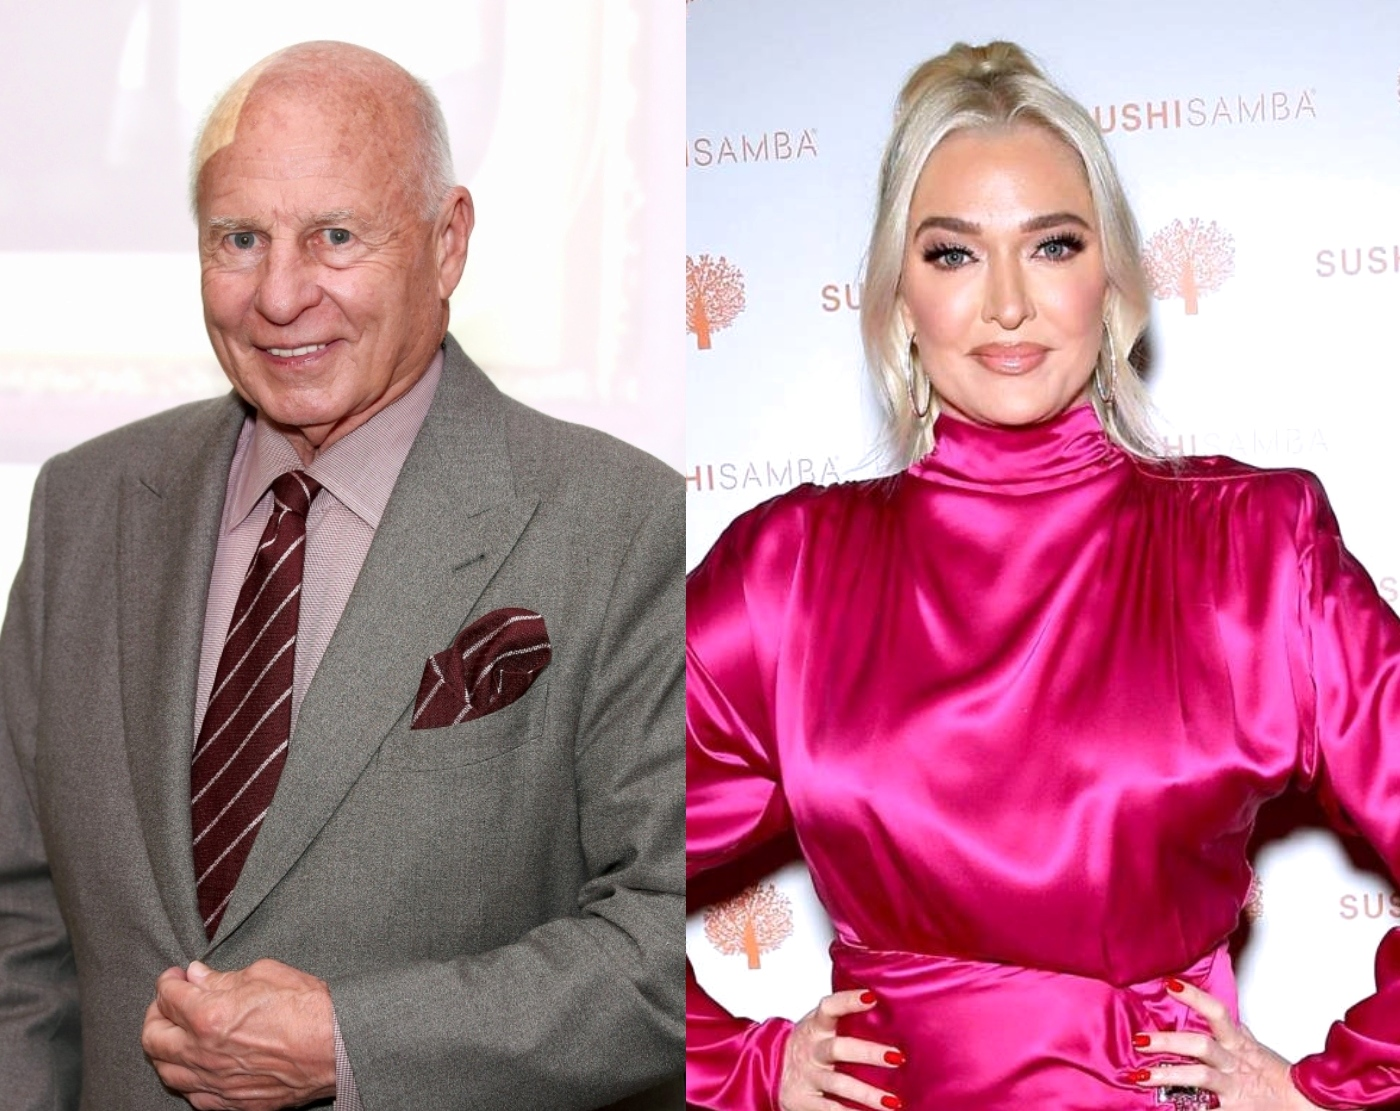 VIDEO: Tom Girardi Suggests Erika Jayne Knew About Legal Malpractice as RHOBH Star Erika is Confronted About His Potential Implication